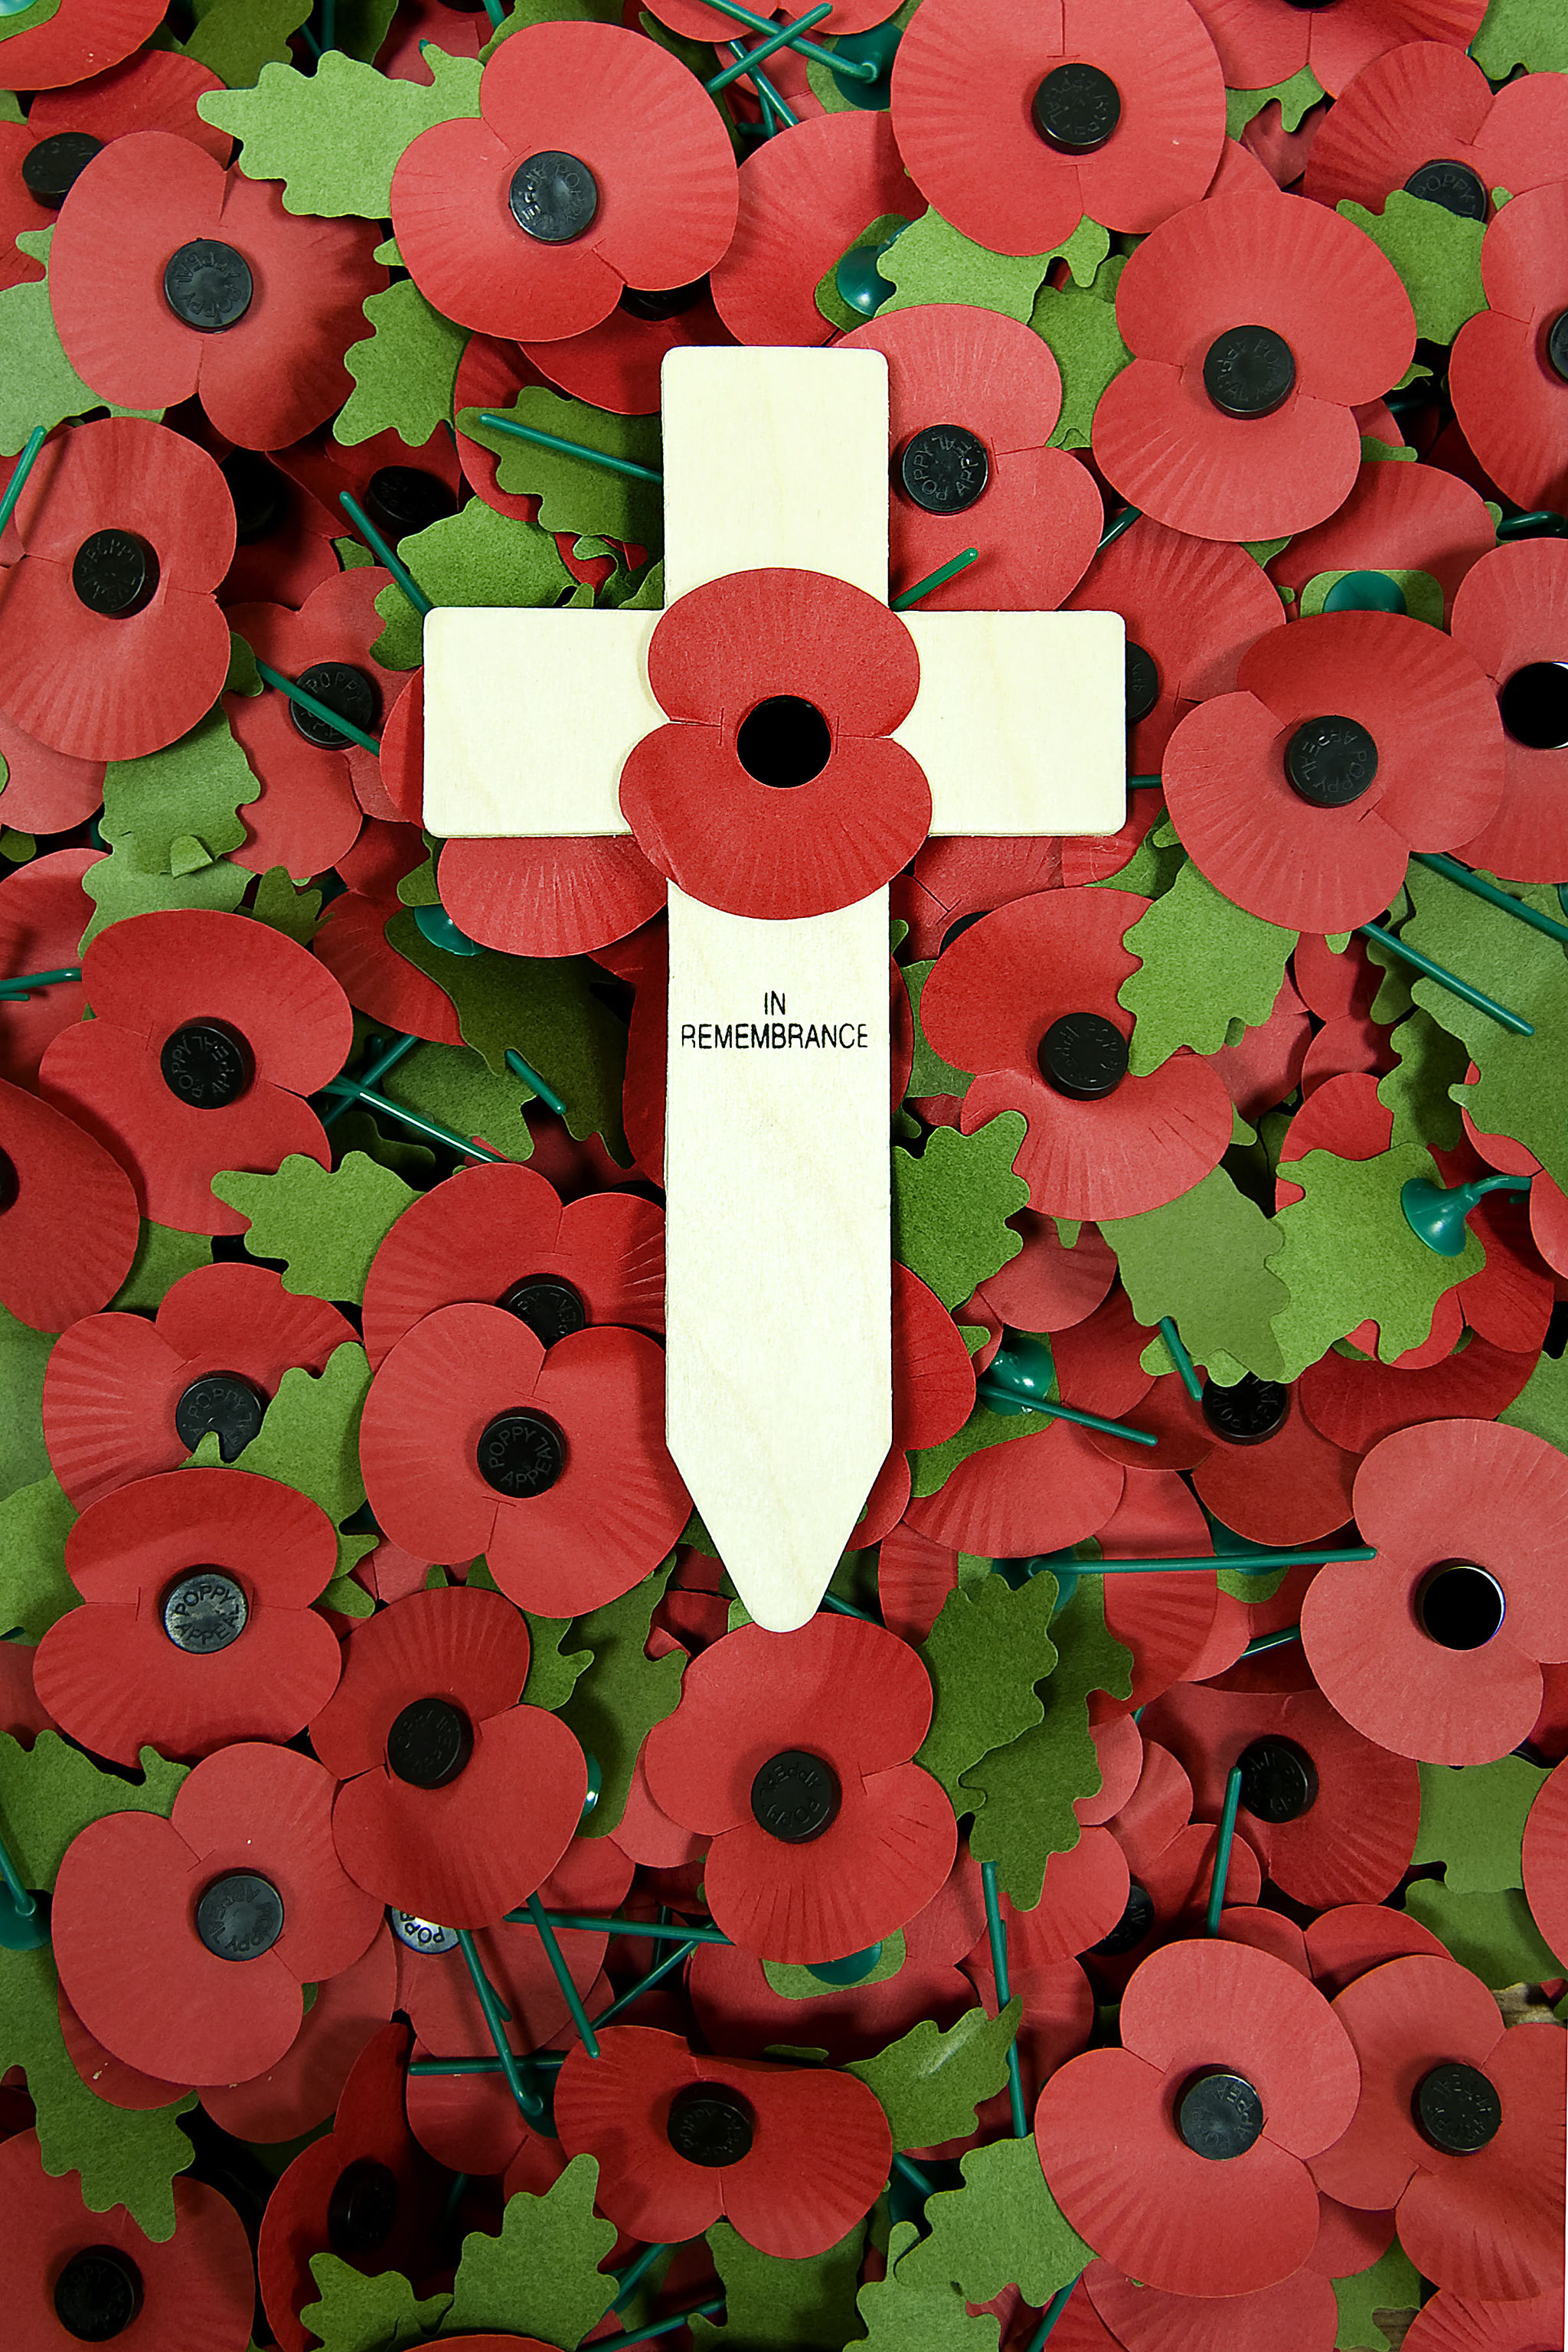 Remembrance_Cross_Laying_on_Poppies_MOD_45153382